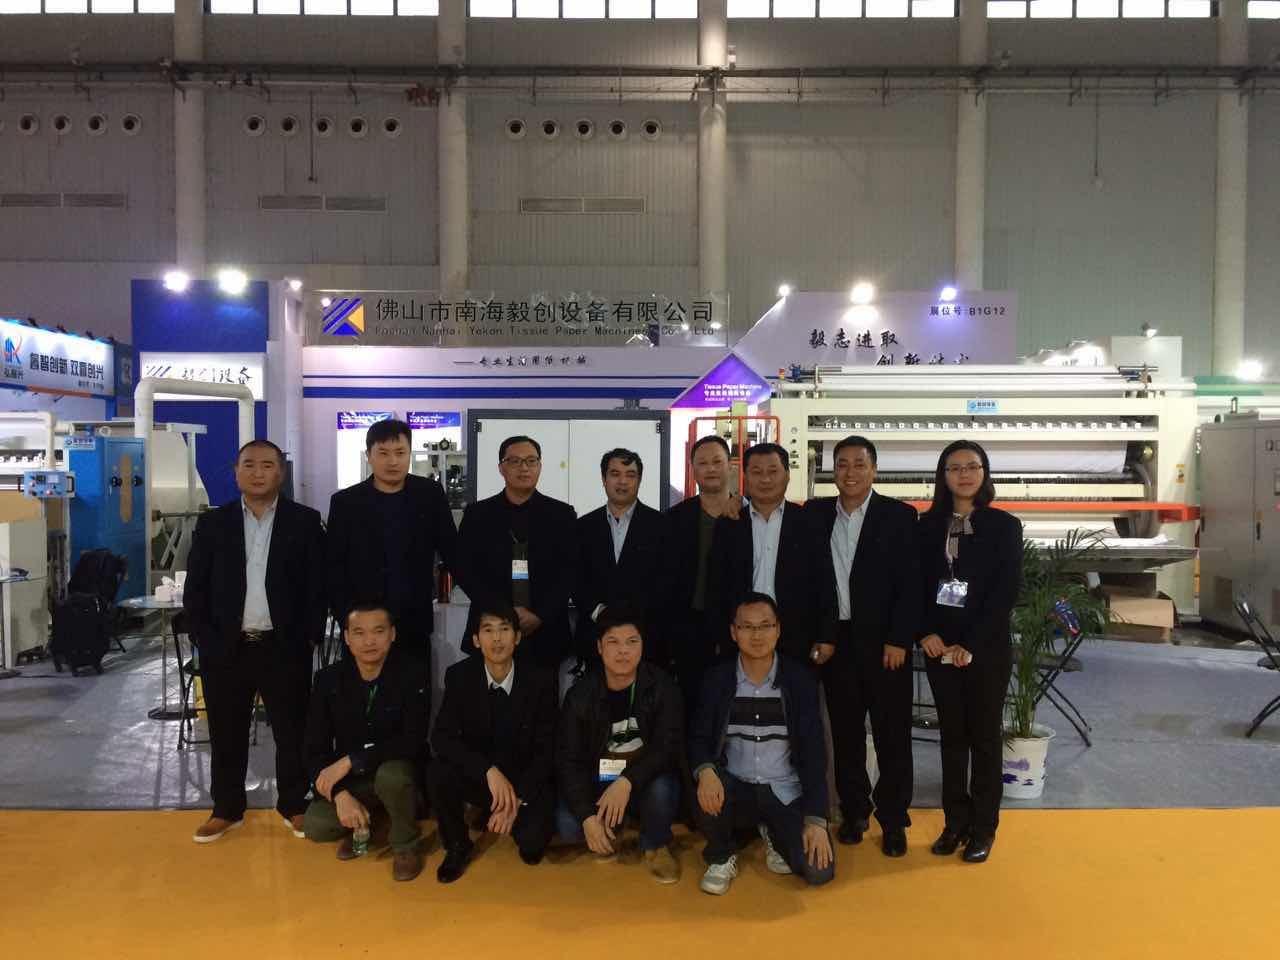 Exhibition in Wuhan city 3-2017